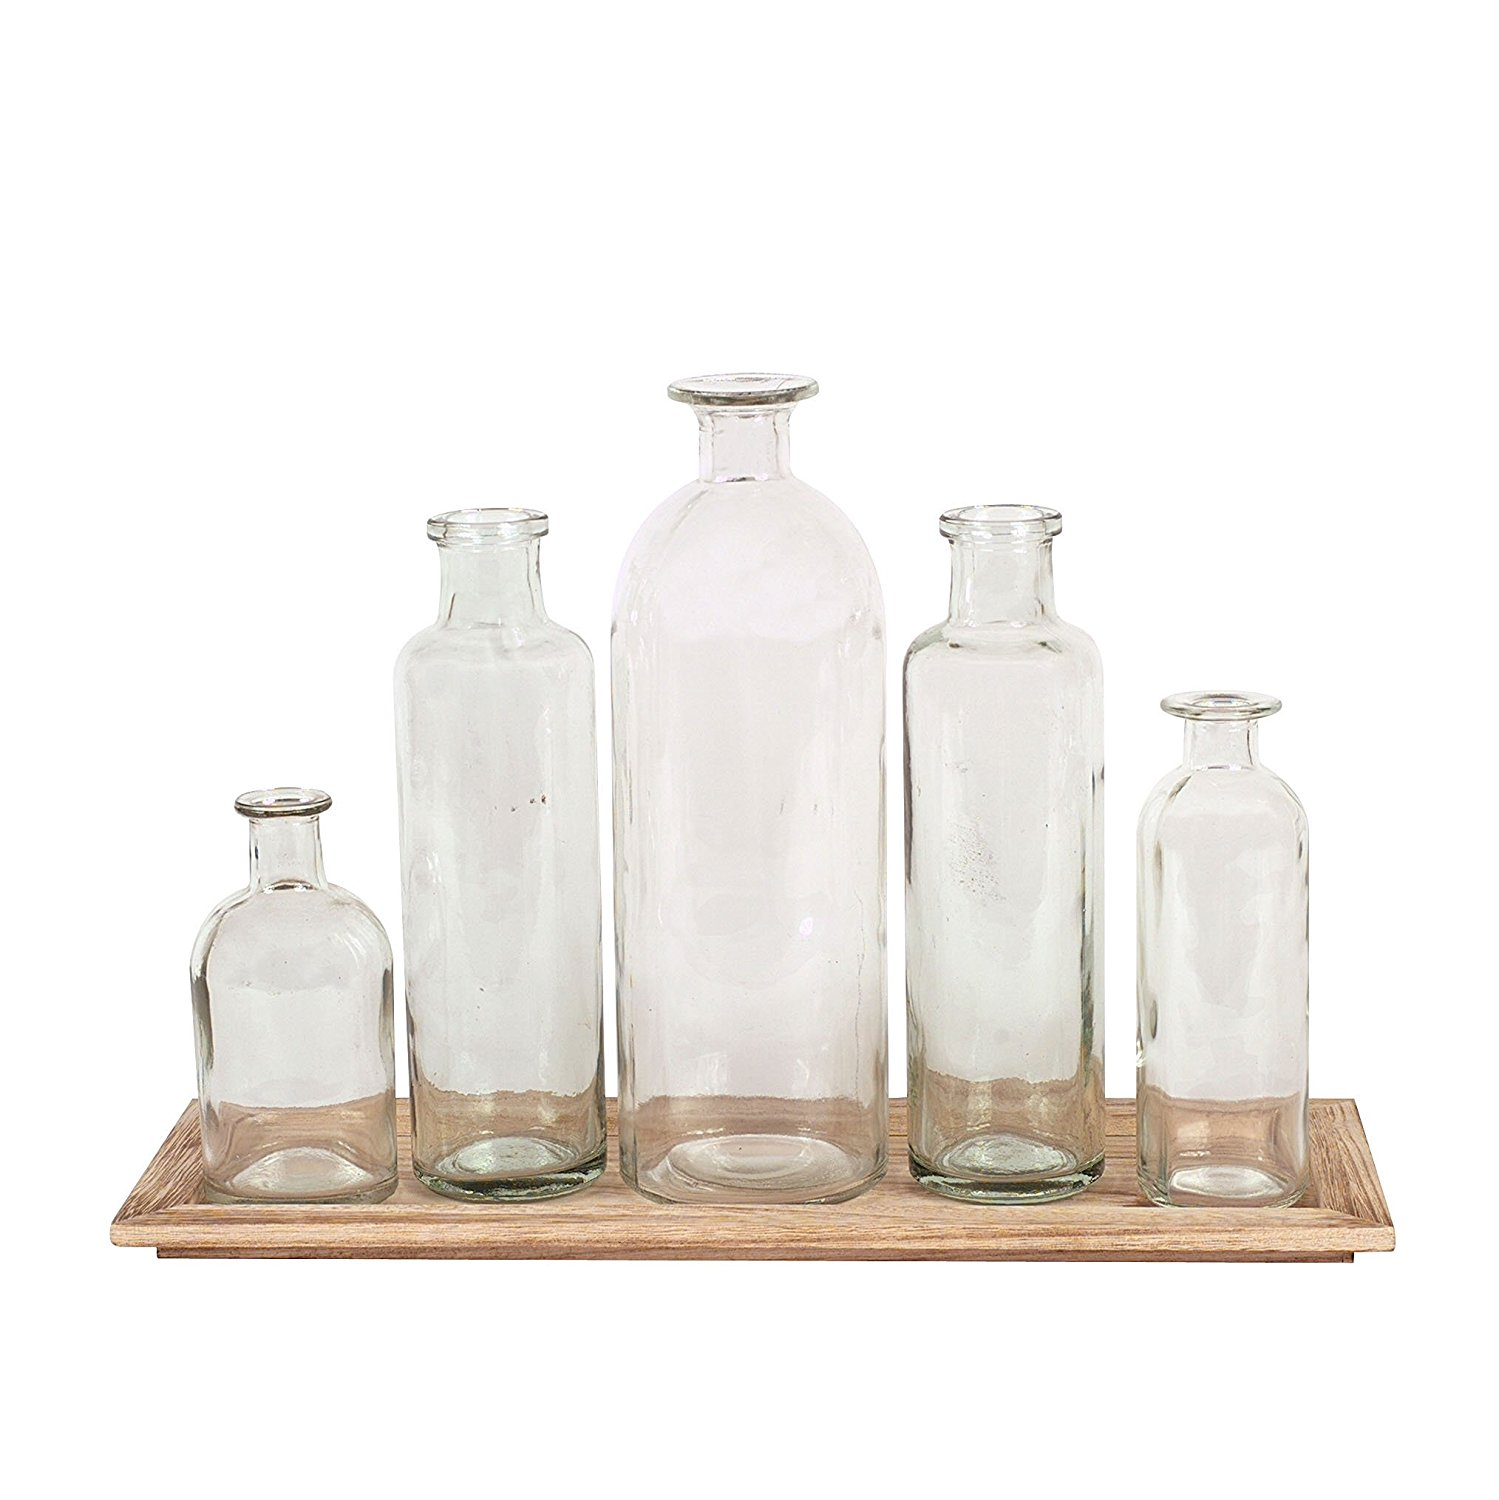 Amazon.com: Creative Co-Op DA2672 Wood Tray with Glass Bottle Vases ...